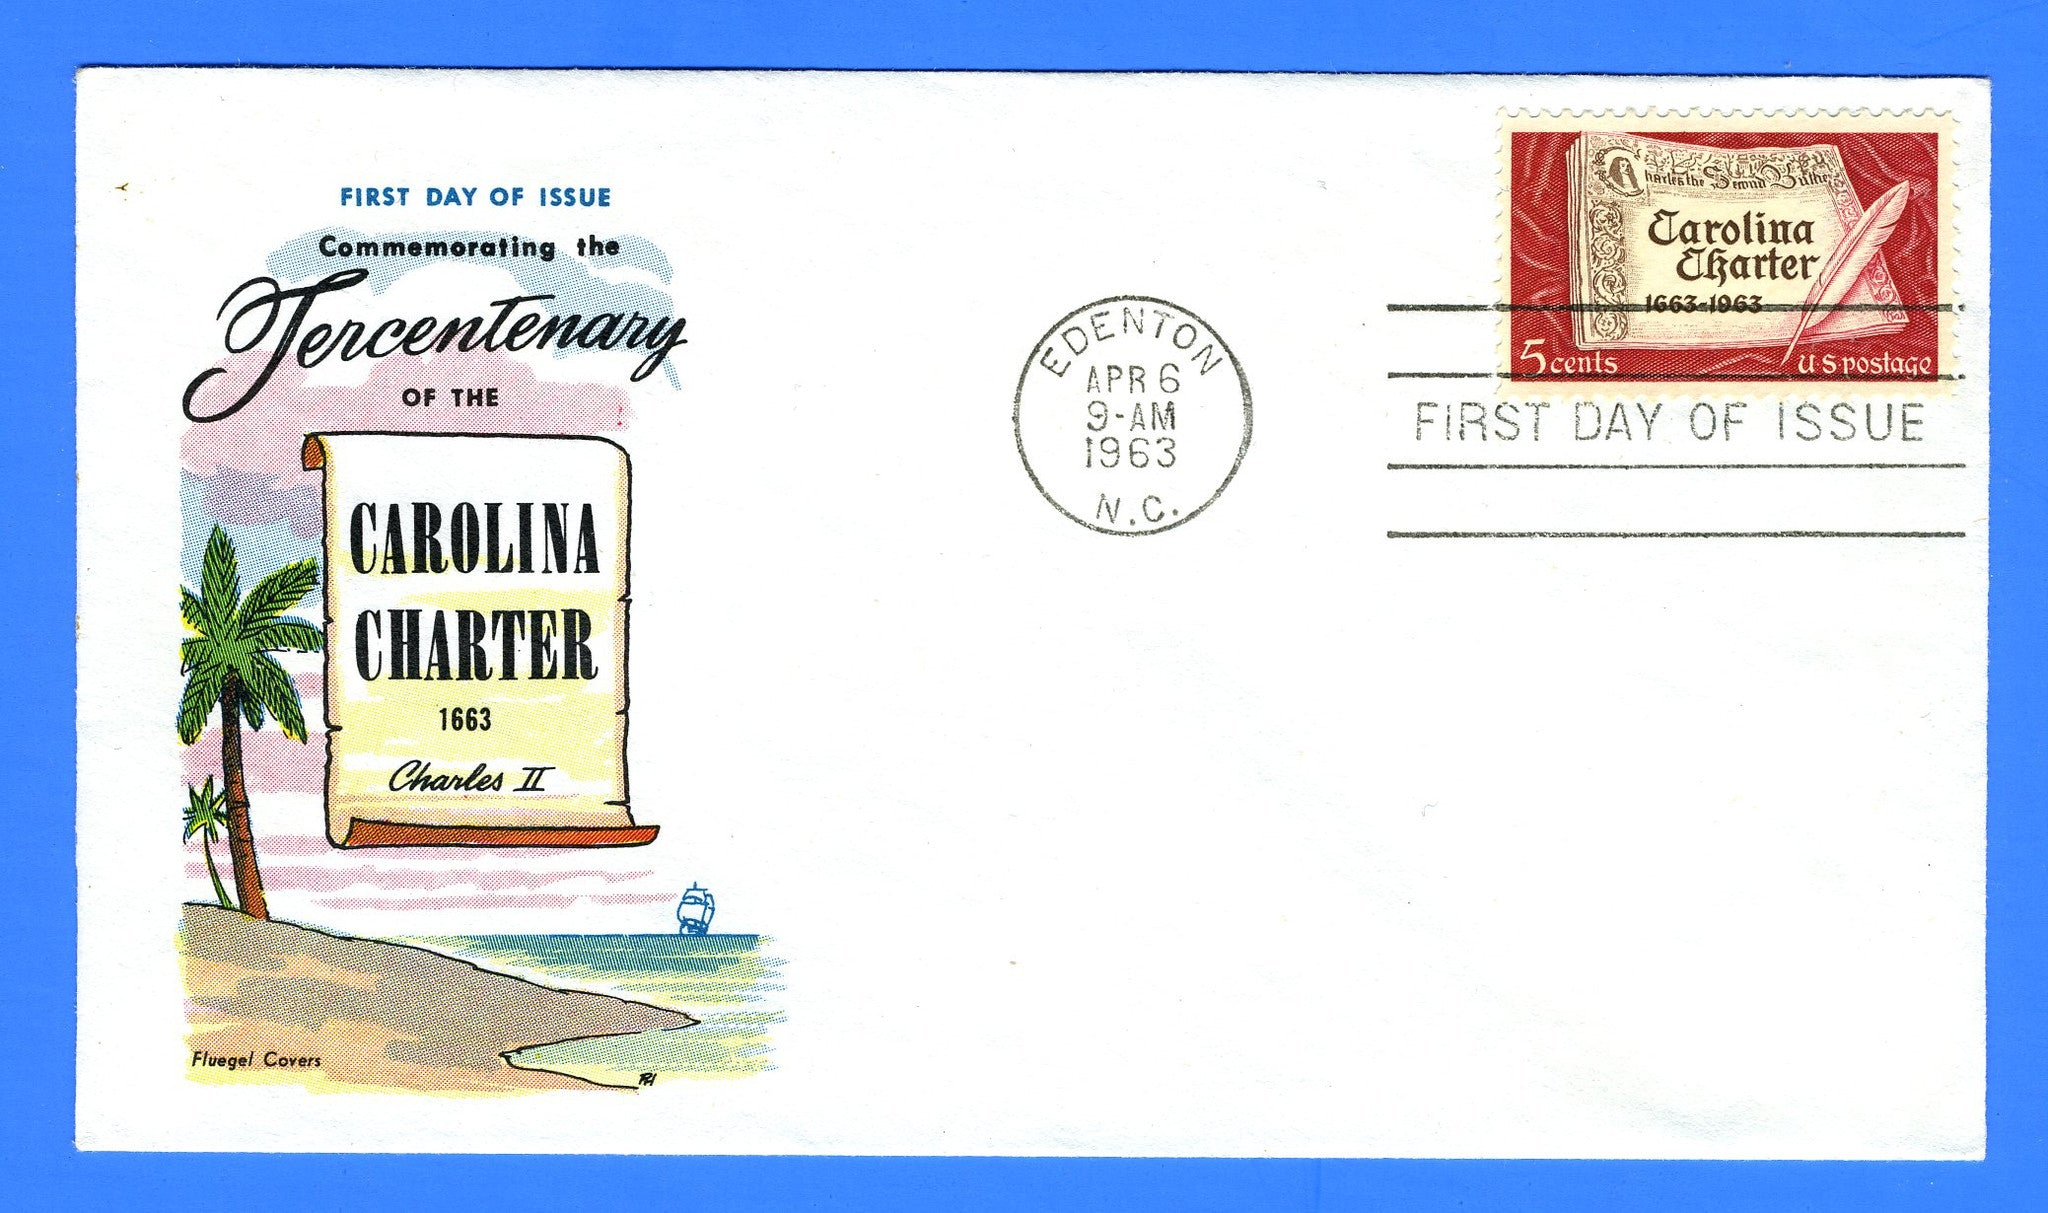 Scott 1230 5c Carolina Charter First Day Cover by Fluegel Covers